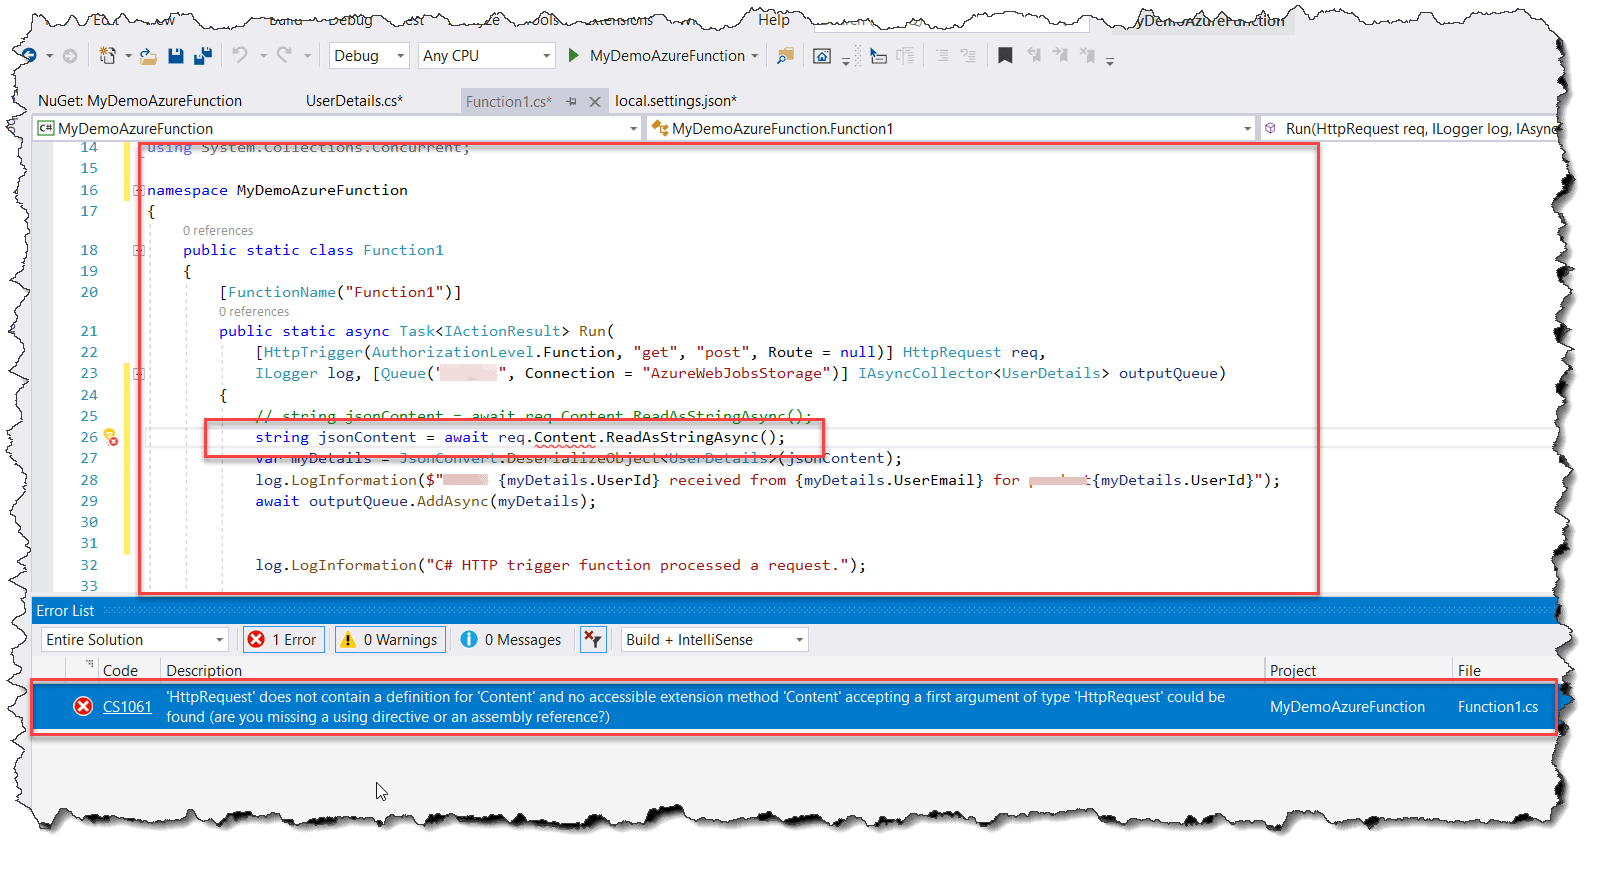 CS1061 C# 'HttpRequest' does not contain a definition for 'Content' and no accessible extension method 'Content' accepting a first argument of type 'HttpRequest' could be found